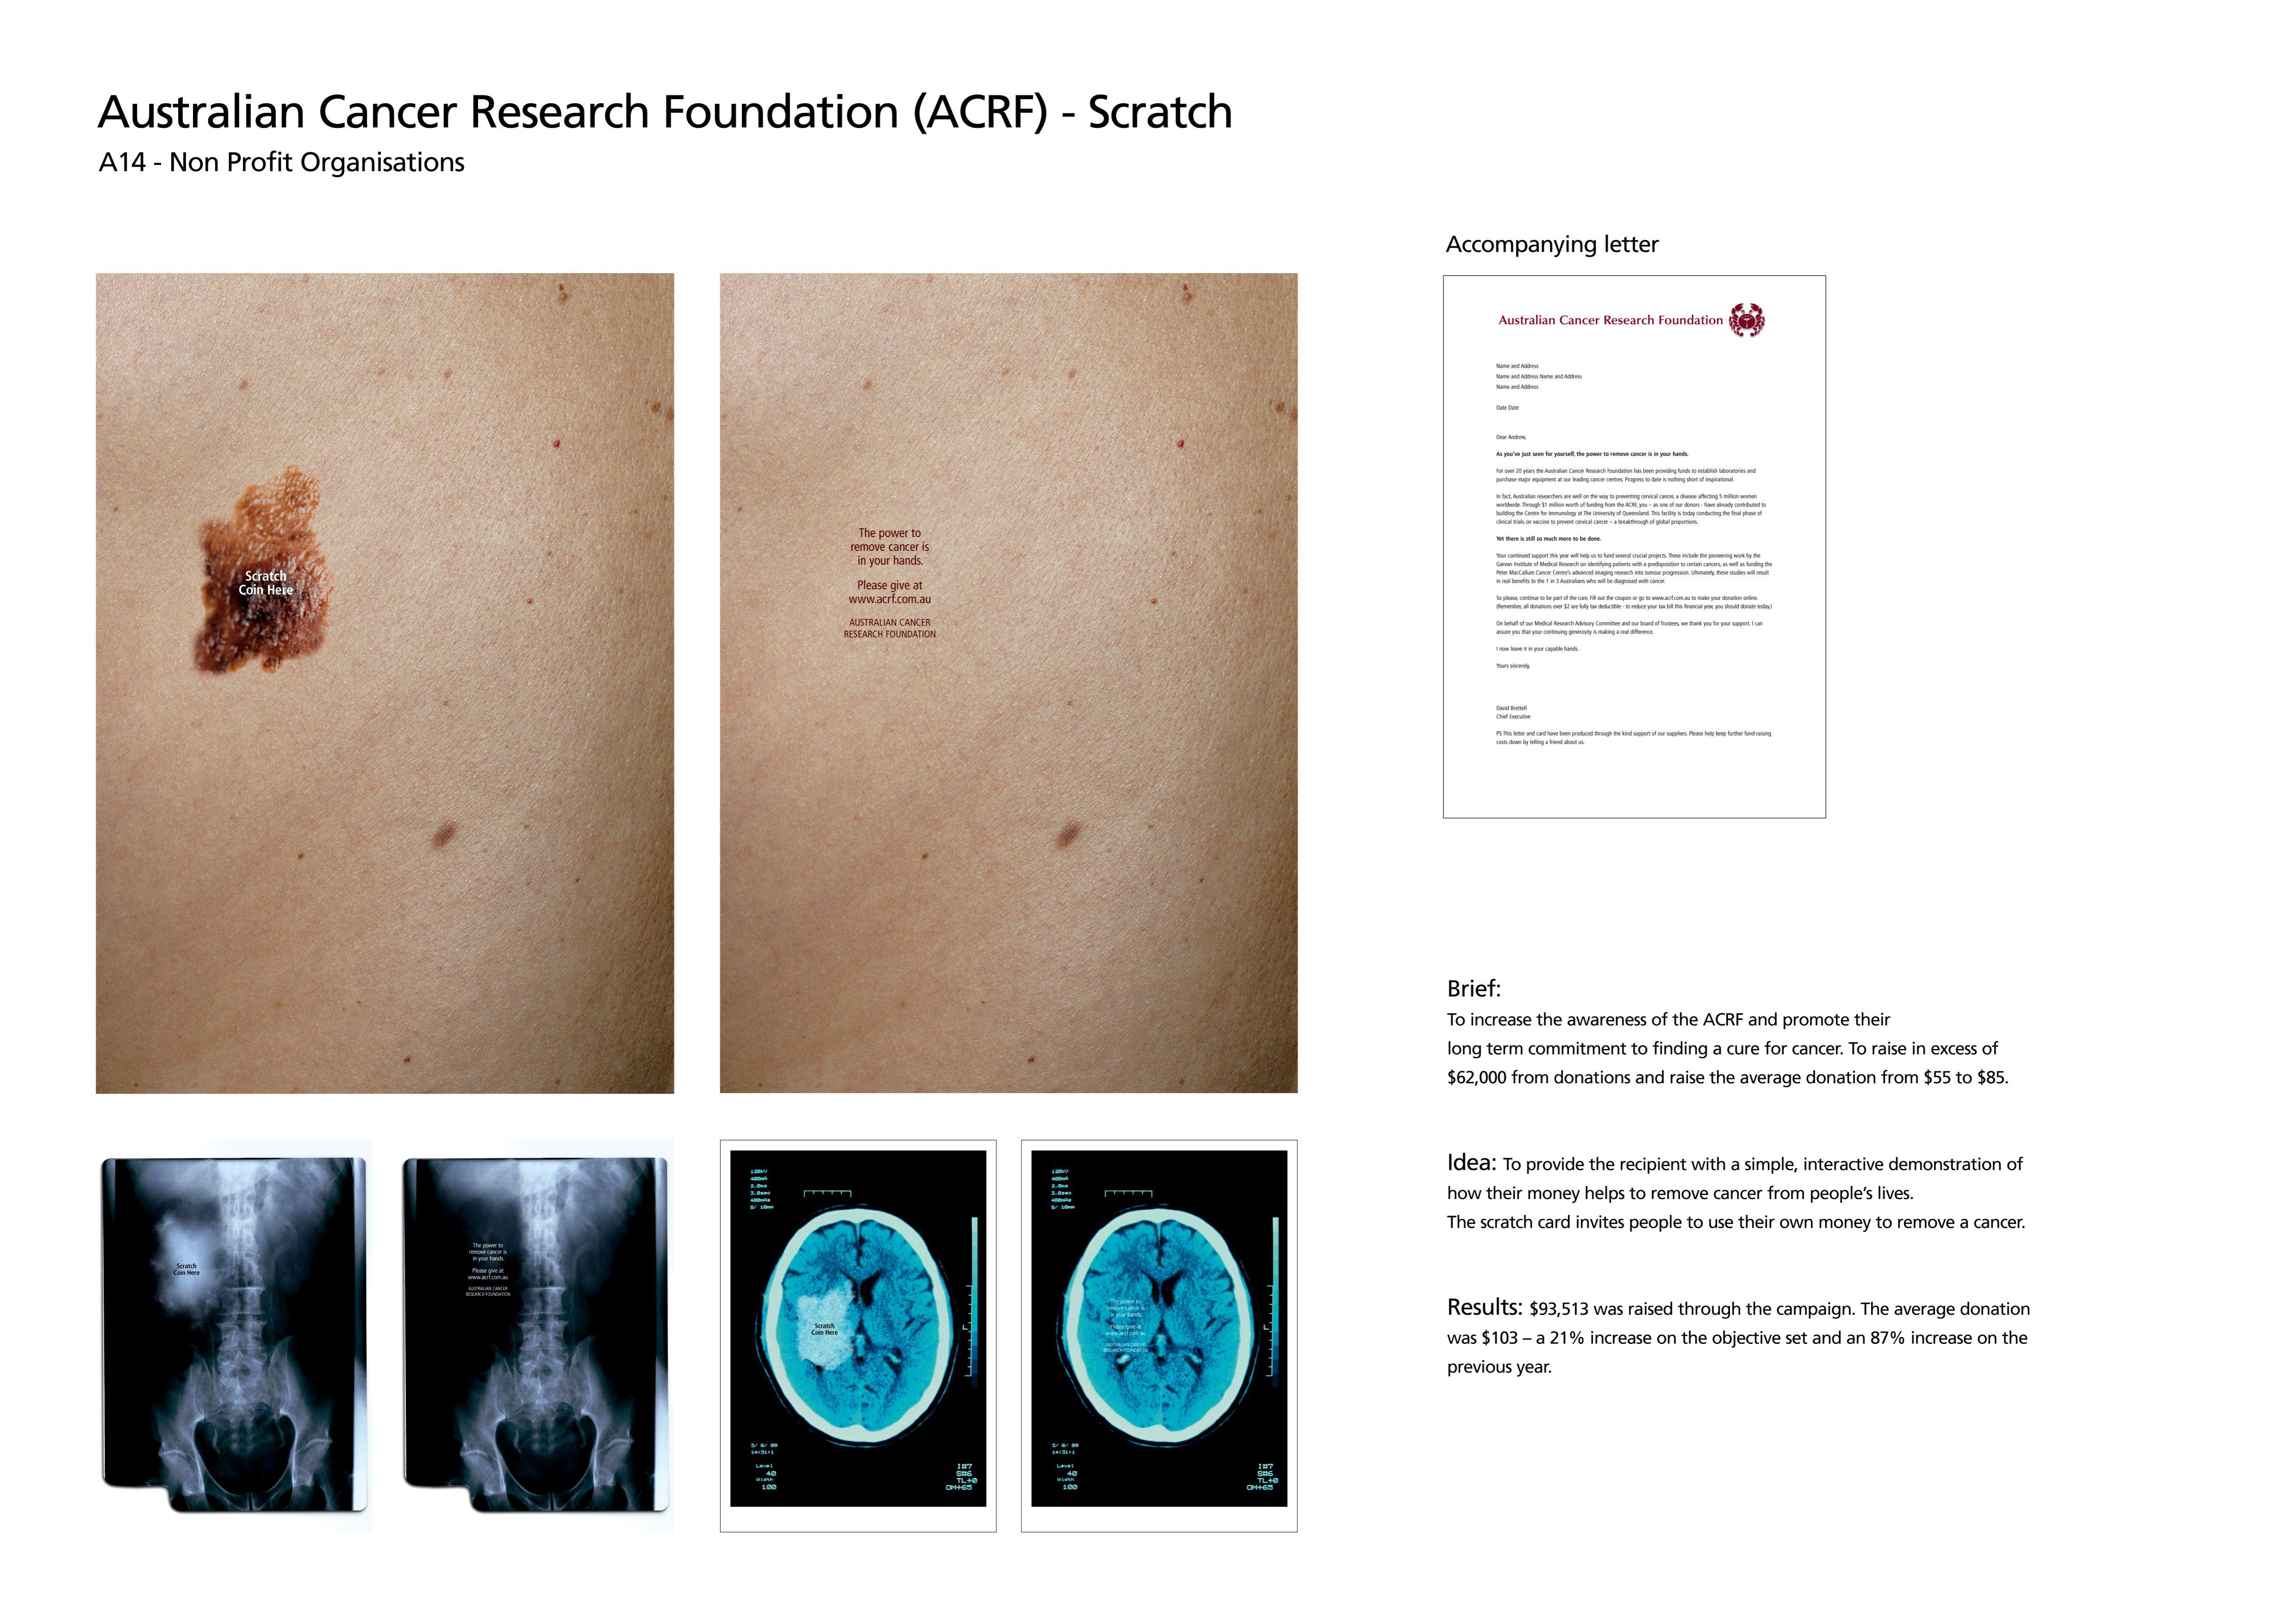 cancer cure research paper Research began promptly in an effort to find a faster way to eradicate the tumor completely scientists found that cancers have a protection around the this newly discovered treatment is a promising new step in the fight against cancer since this time the fda has given this possible cure the designation.